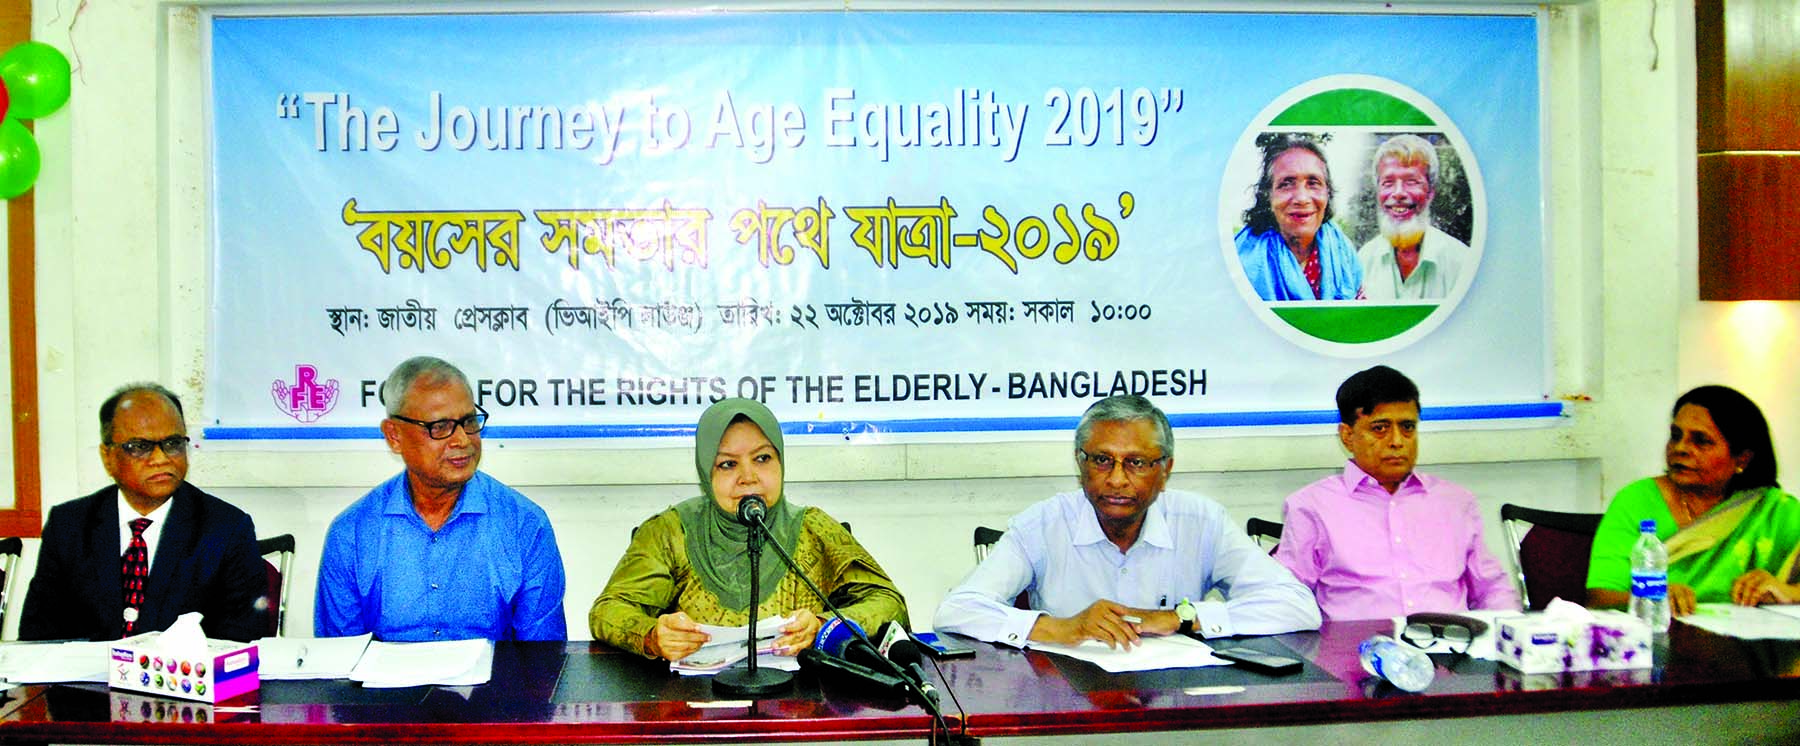 Participants at a seminar on 'The Journey to Age Equality-2019' organised by Forum for the Rights of the Elderly-Bangladesh at the Jatiya Press Club on Tuesday.